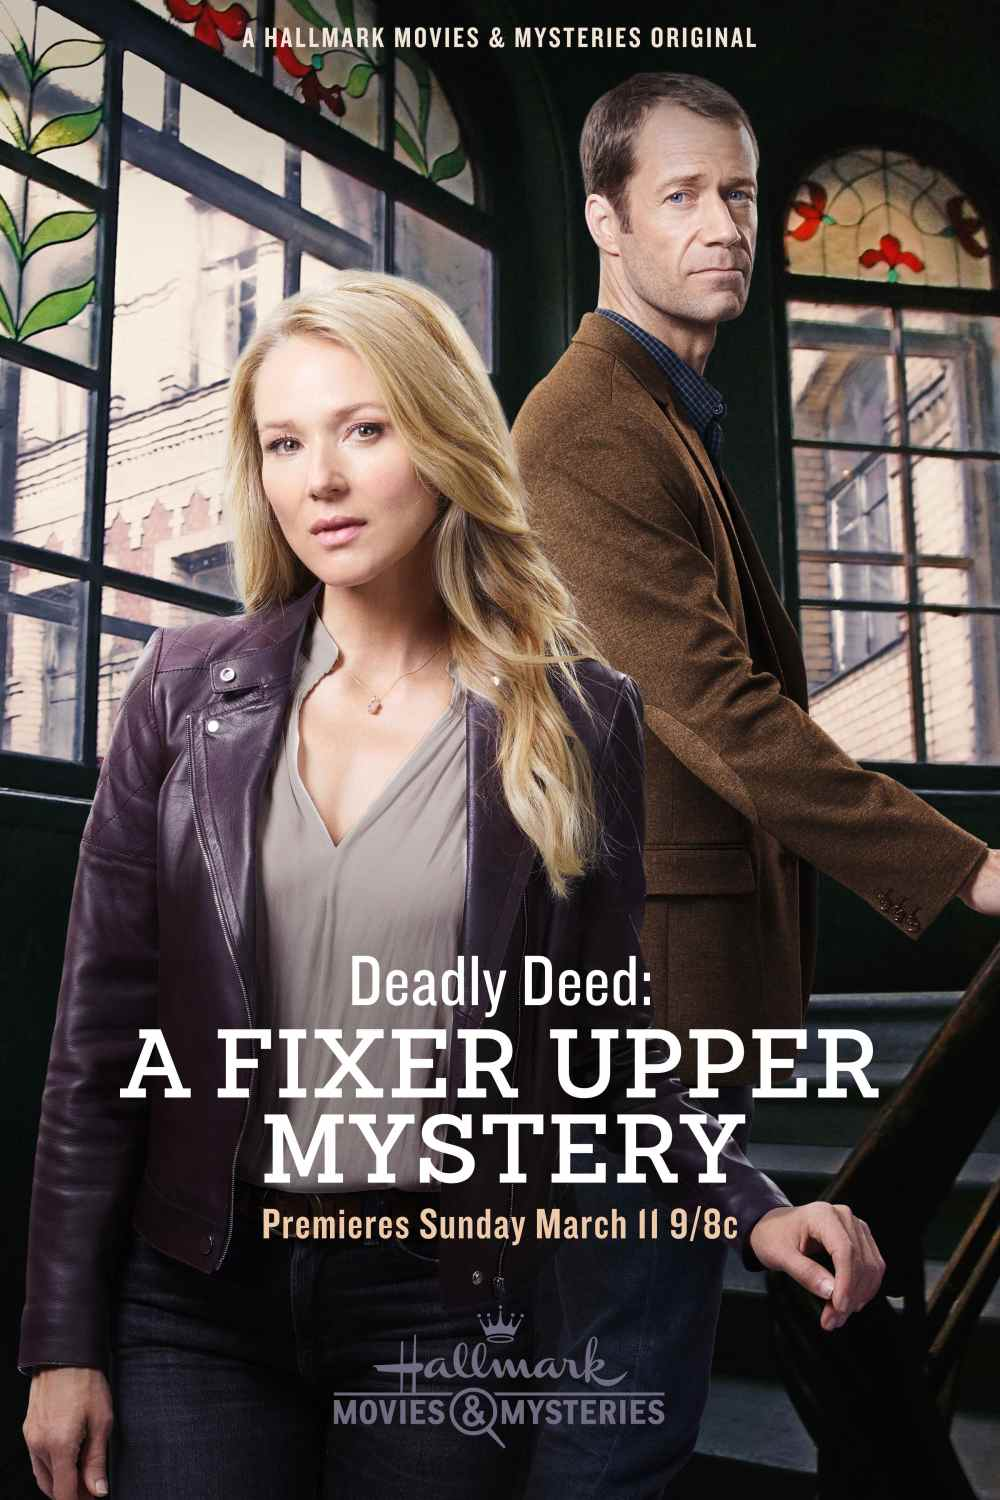 Deadly Deed A Fixer Upper Mystery Final Photo Assets